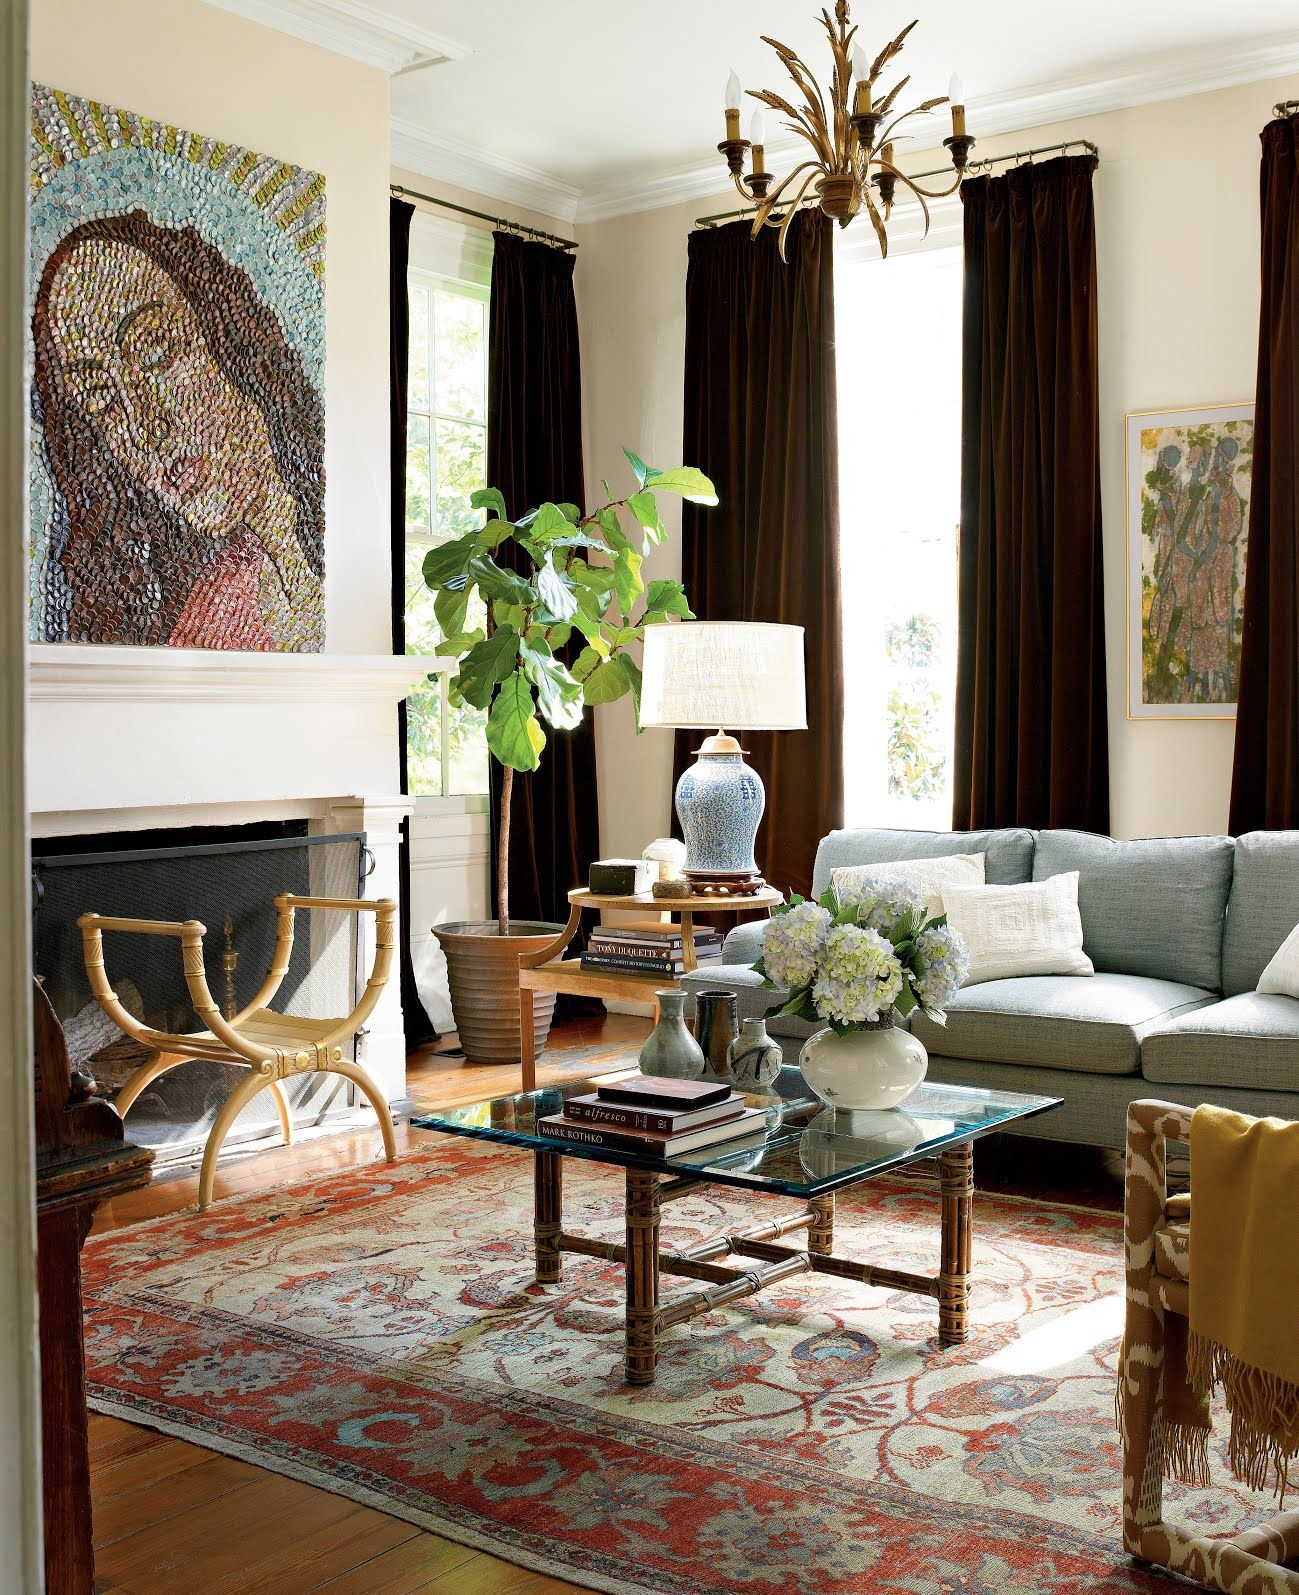 23 Traditional Living Rooms For Inspiration: 108 Living Room Decorating Ideas